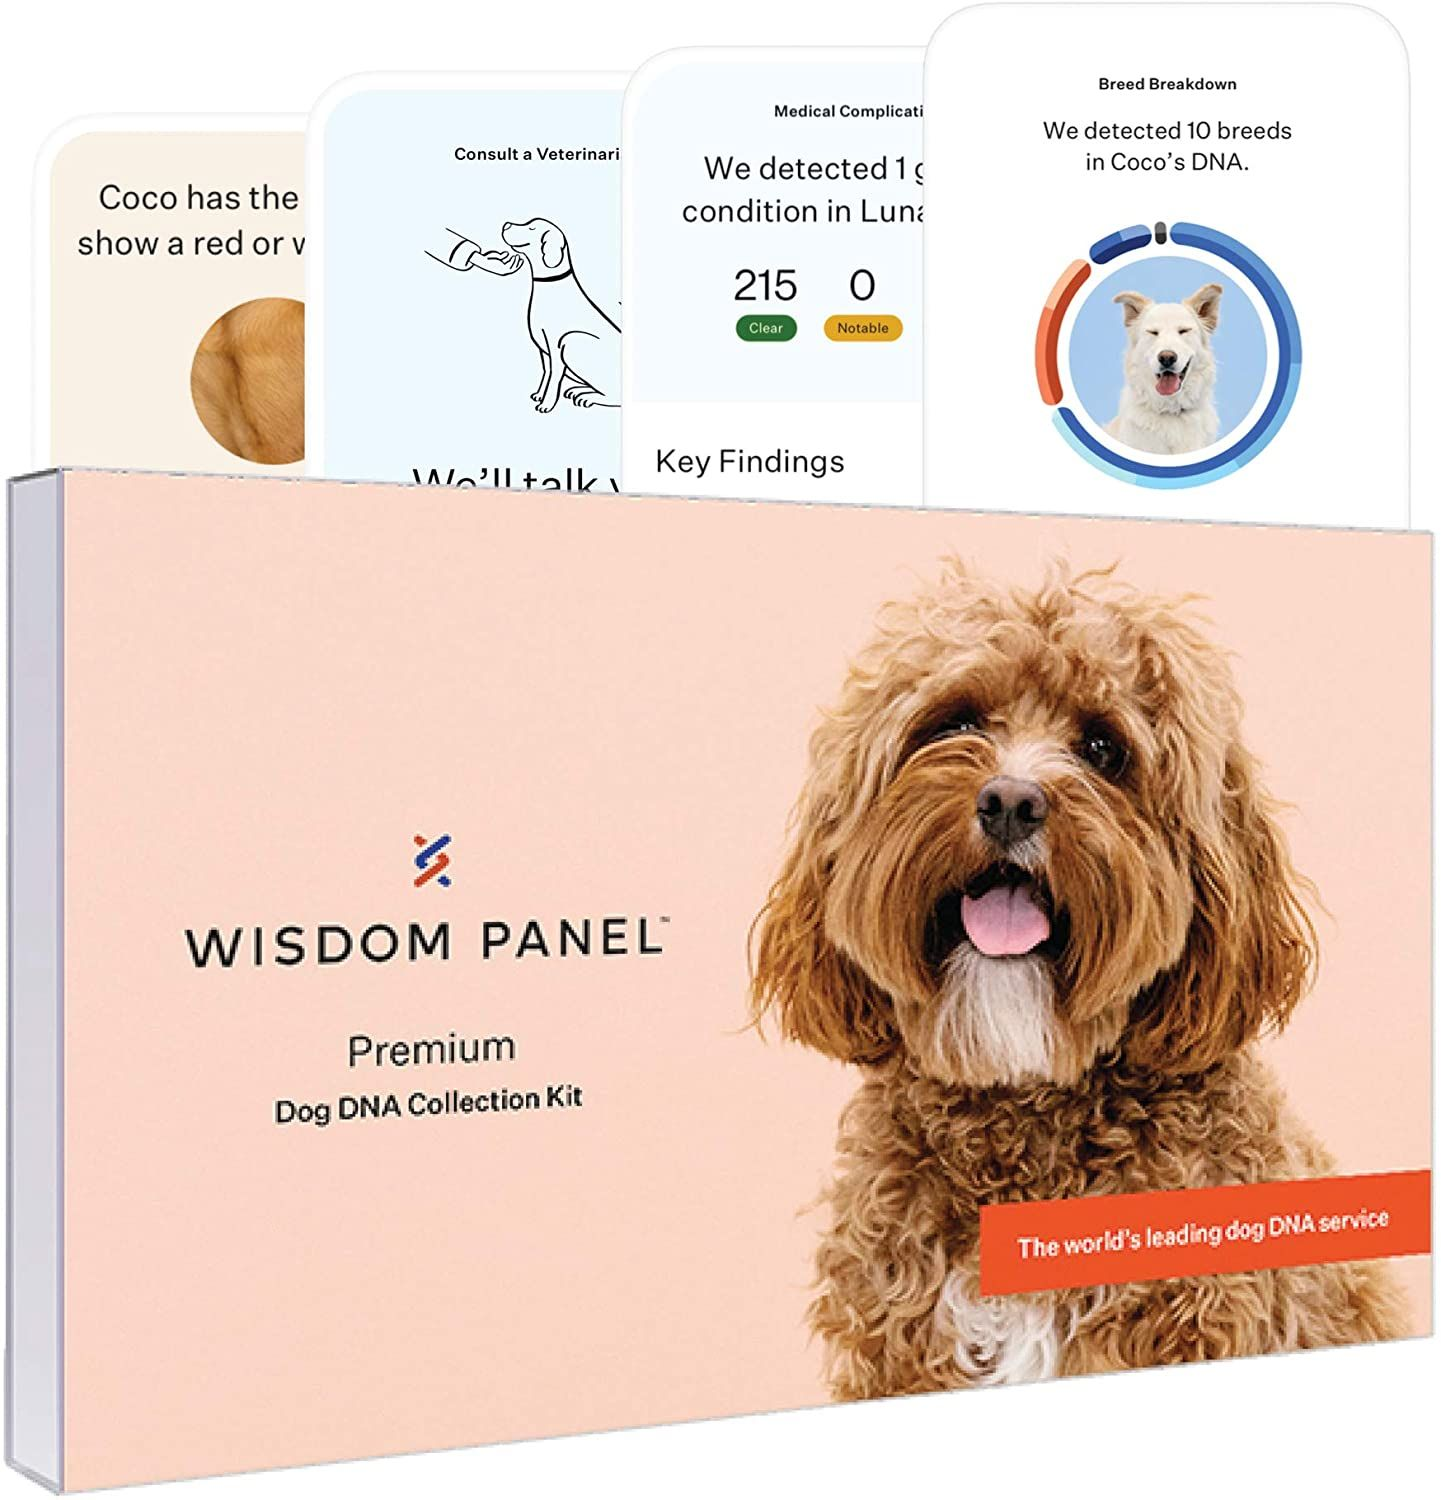 gifts for dog lovers-5.jpg